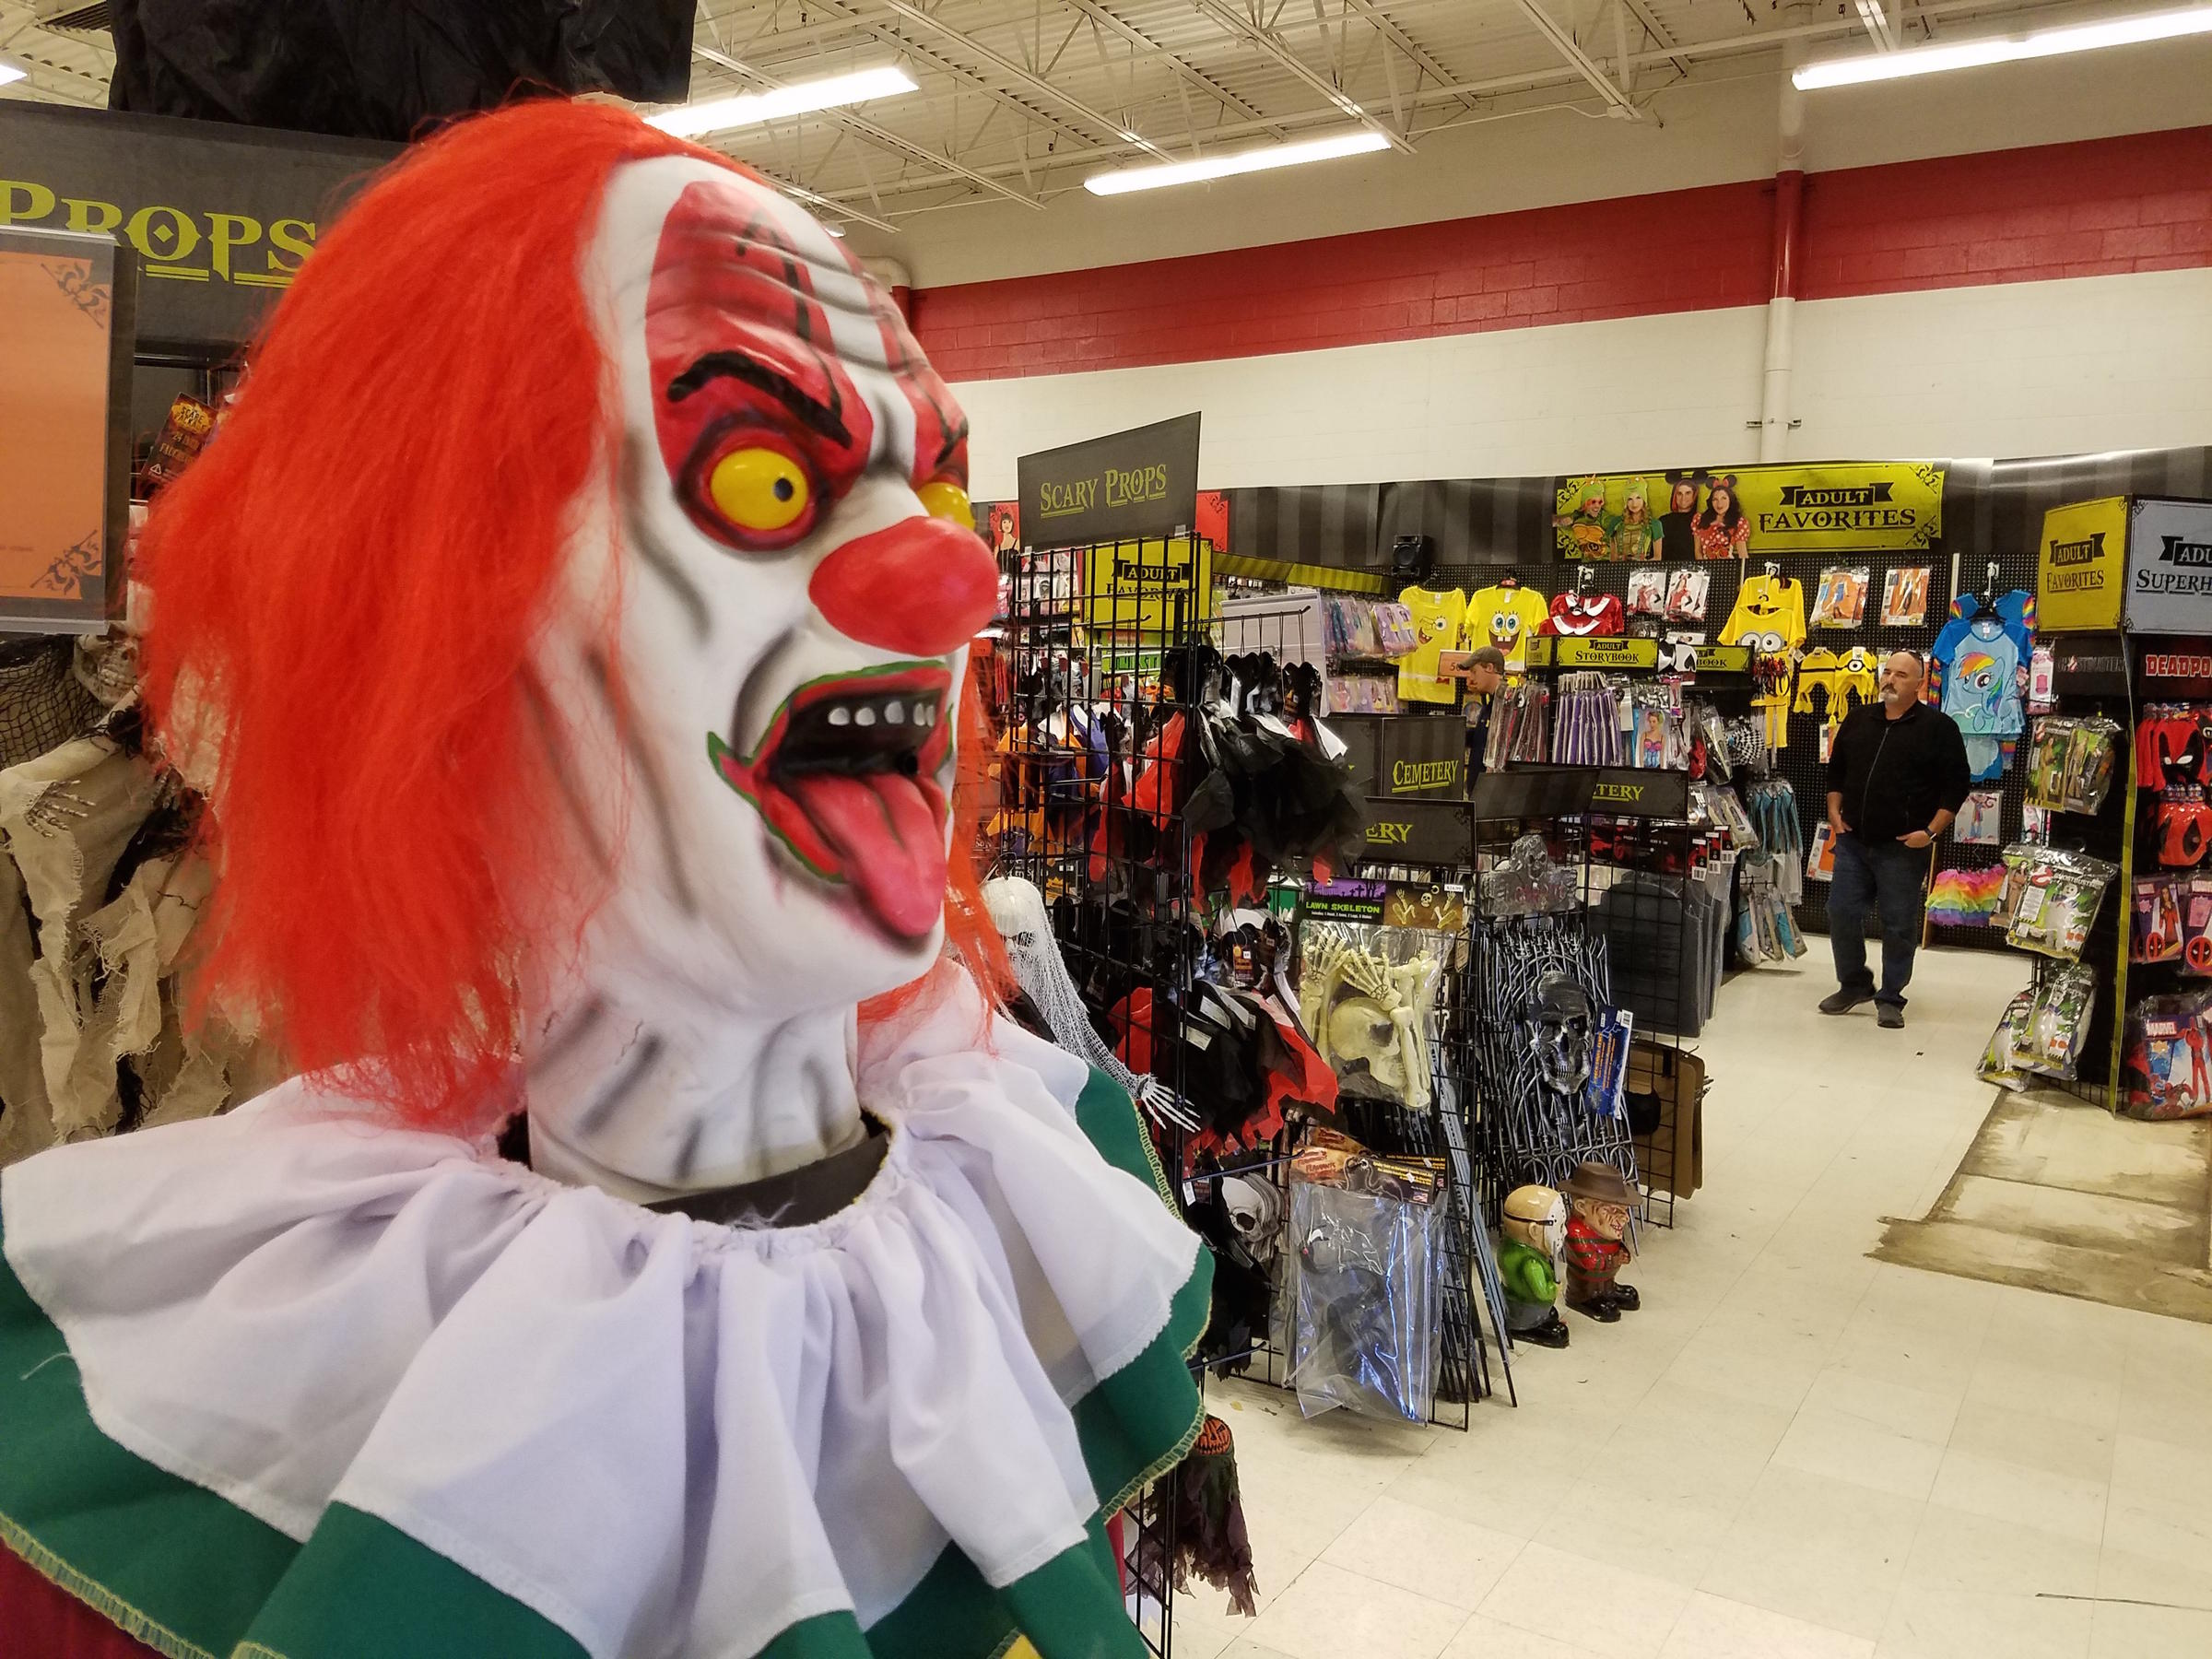 Come visit your local Spirit Halloween at Michigan Ave for costumes, props, accessories, hats, wigs, shoes, make-up, masks and much more!